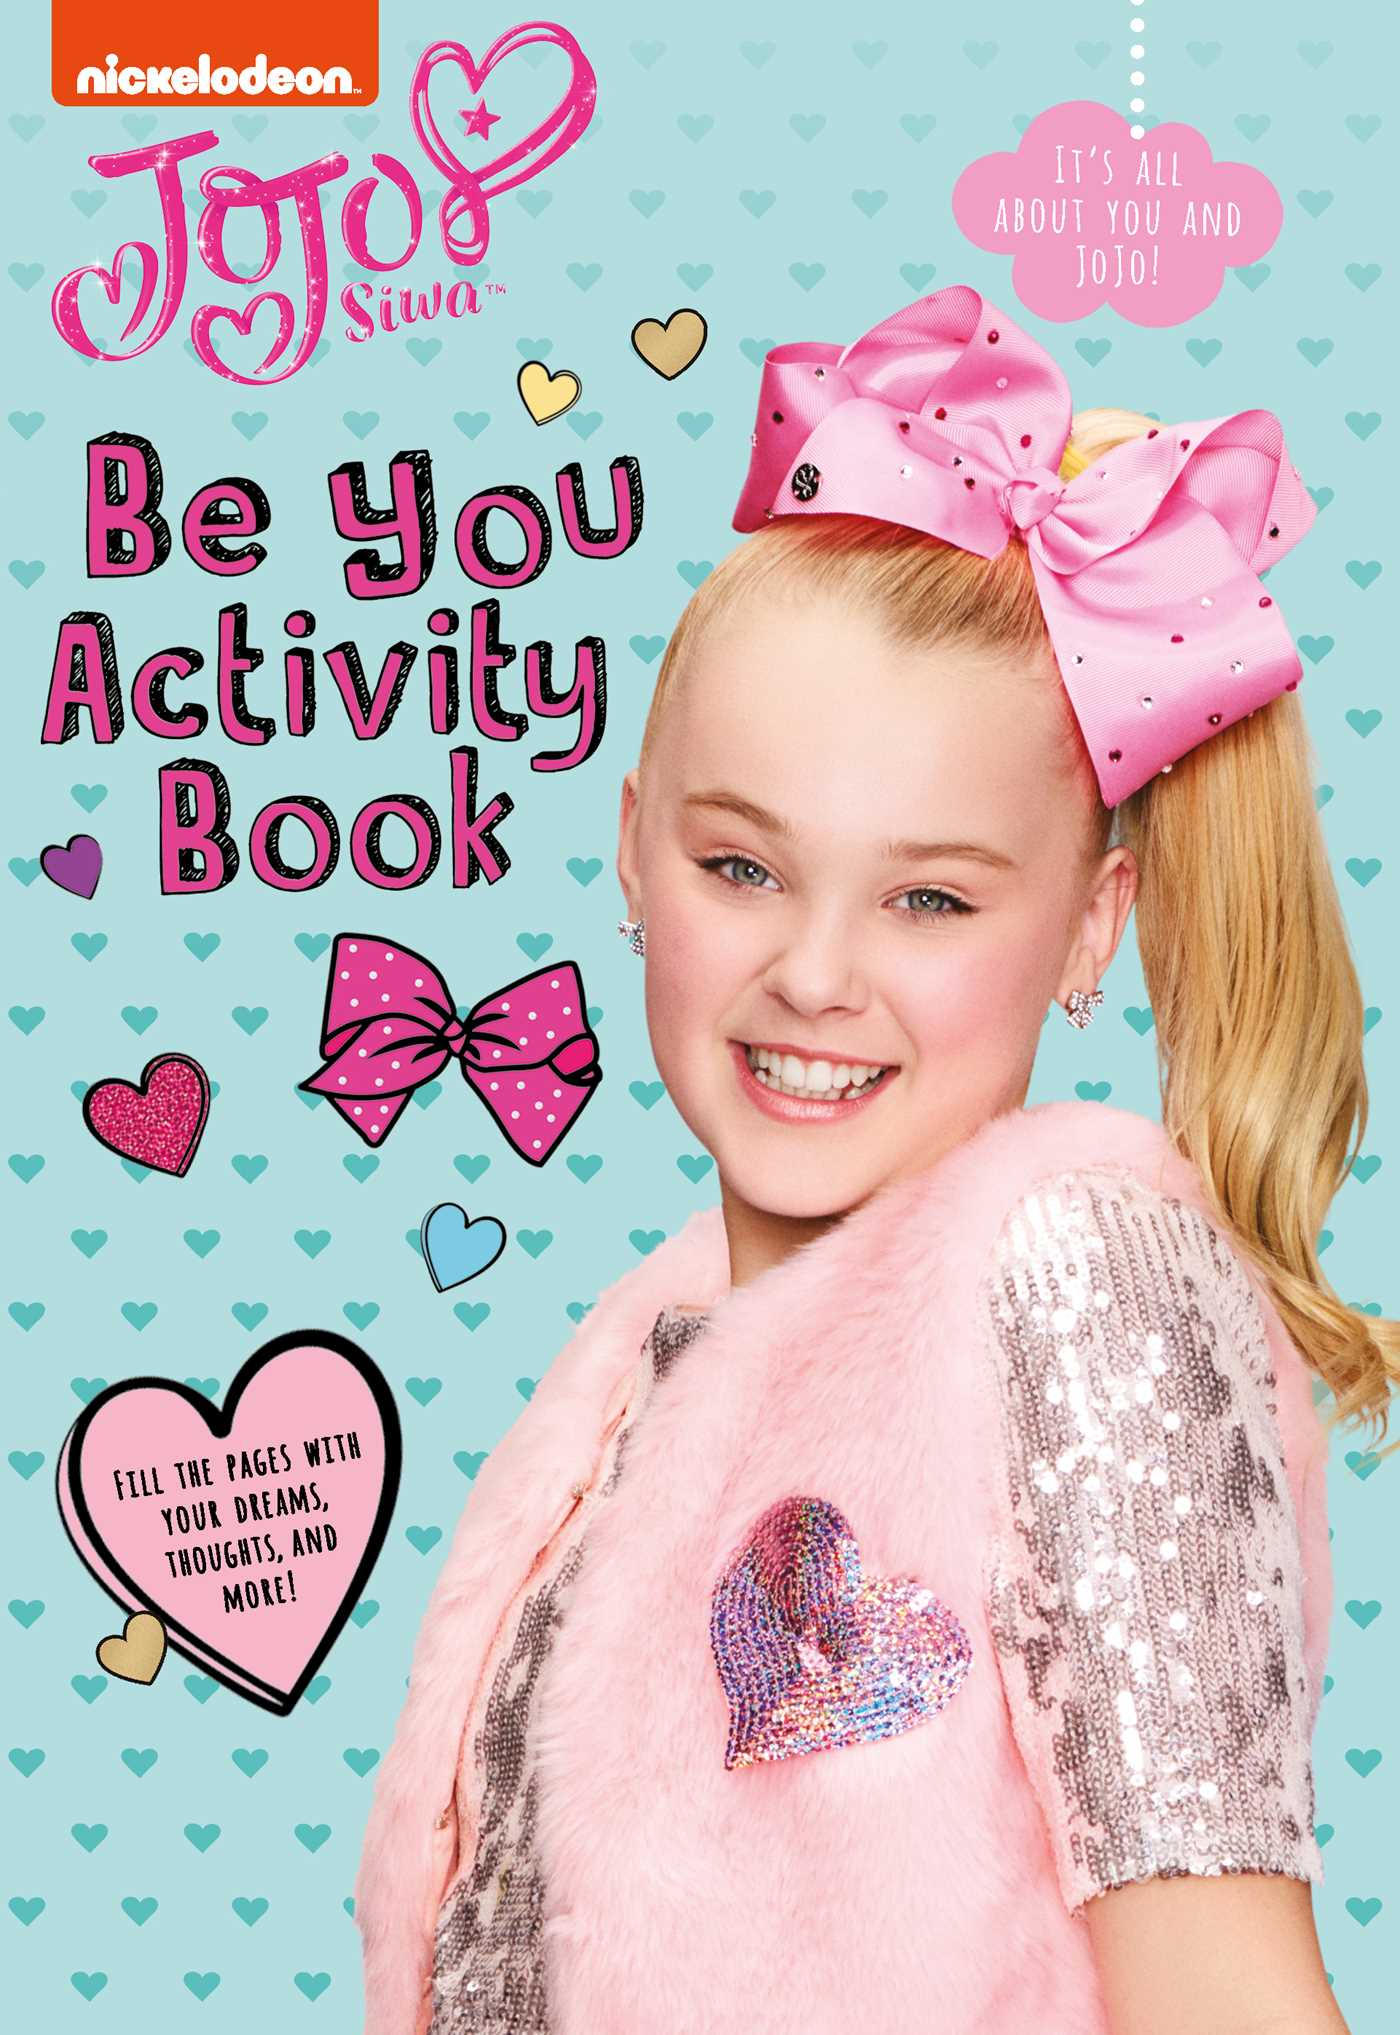 Be You Activity Book Book by BuzzPop Official